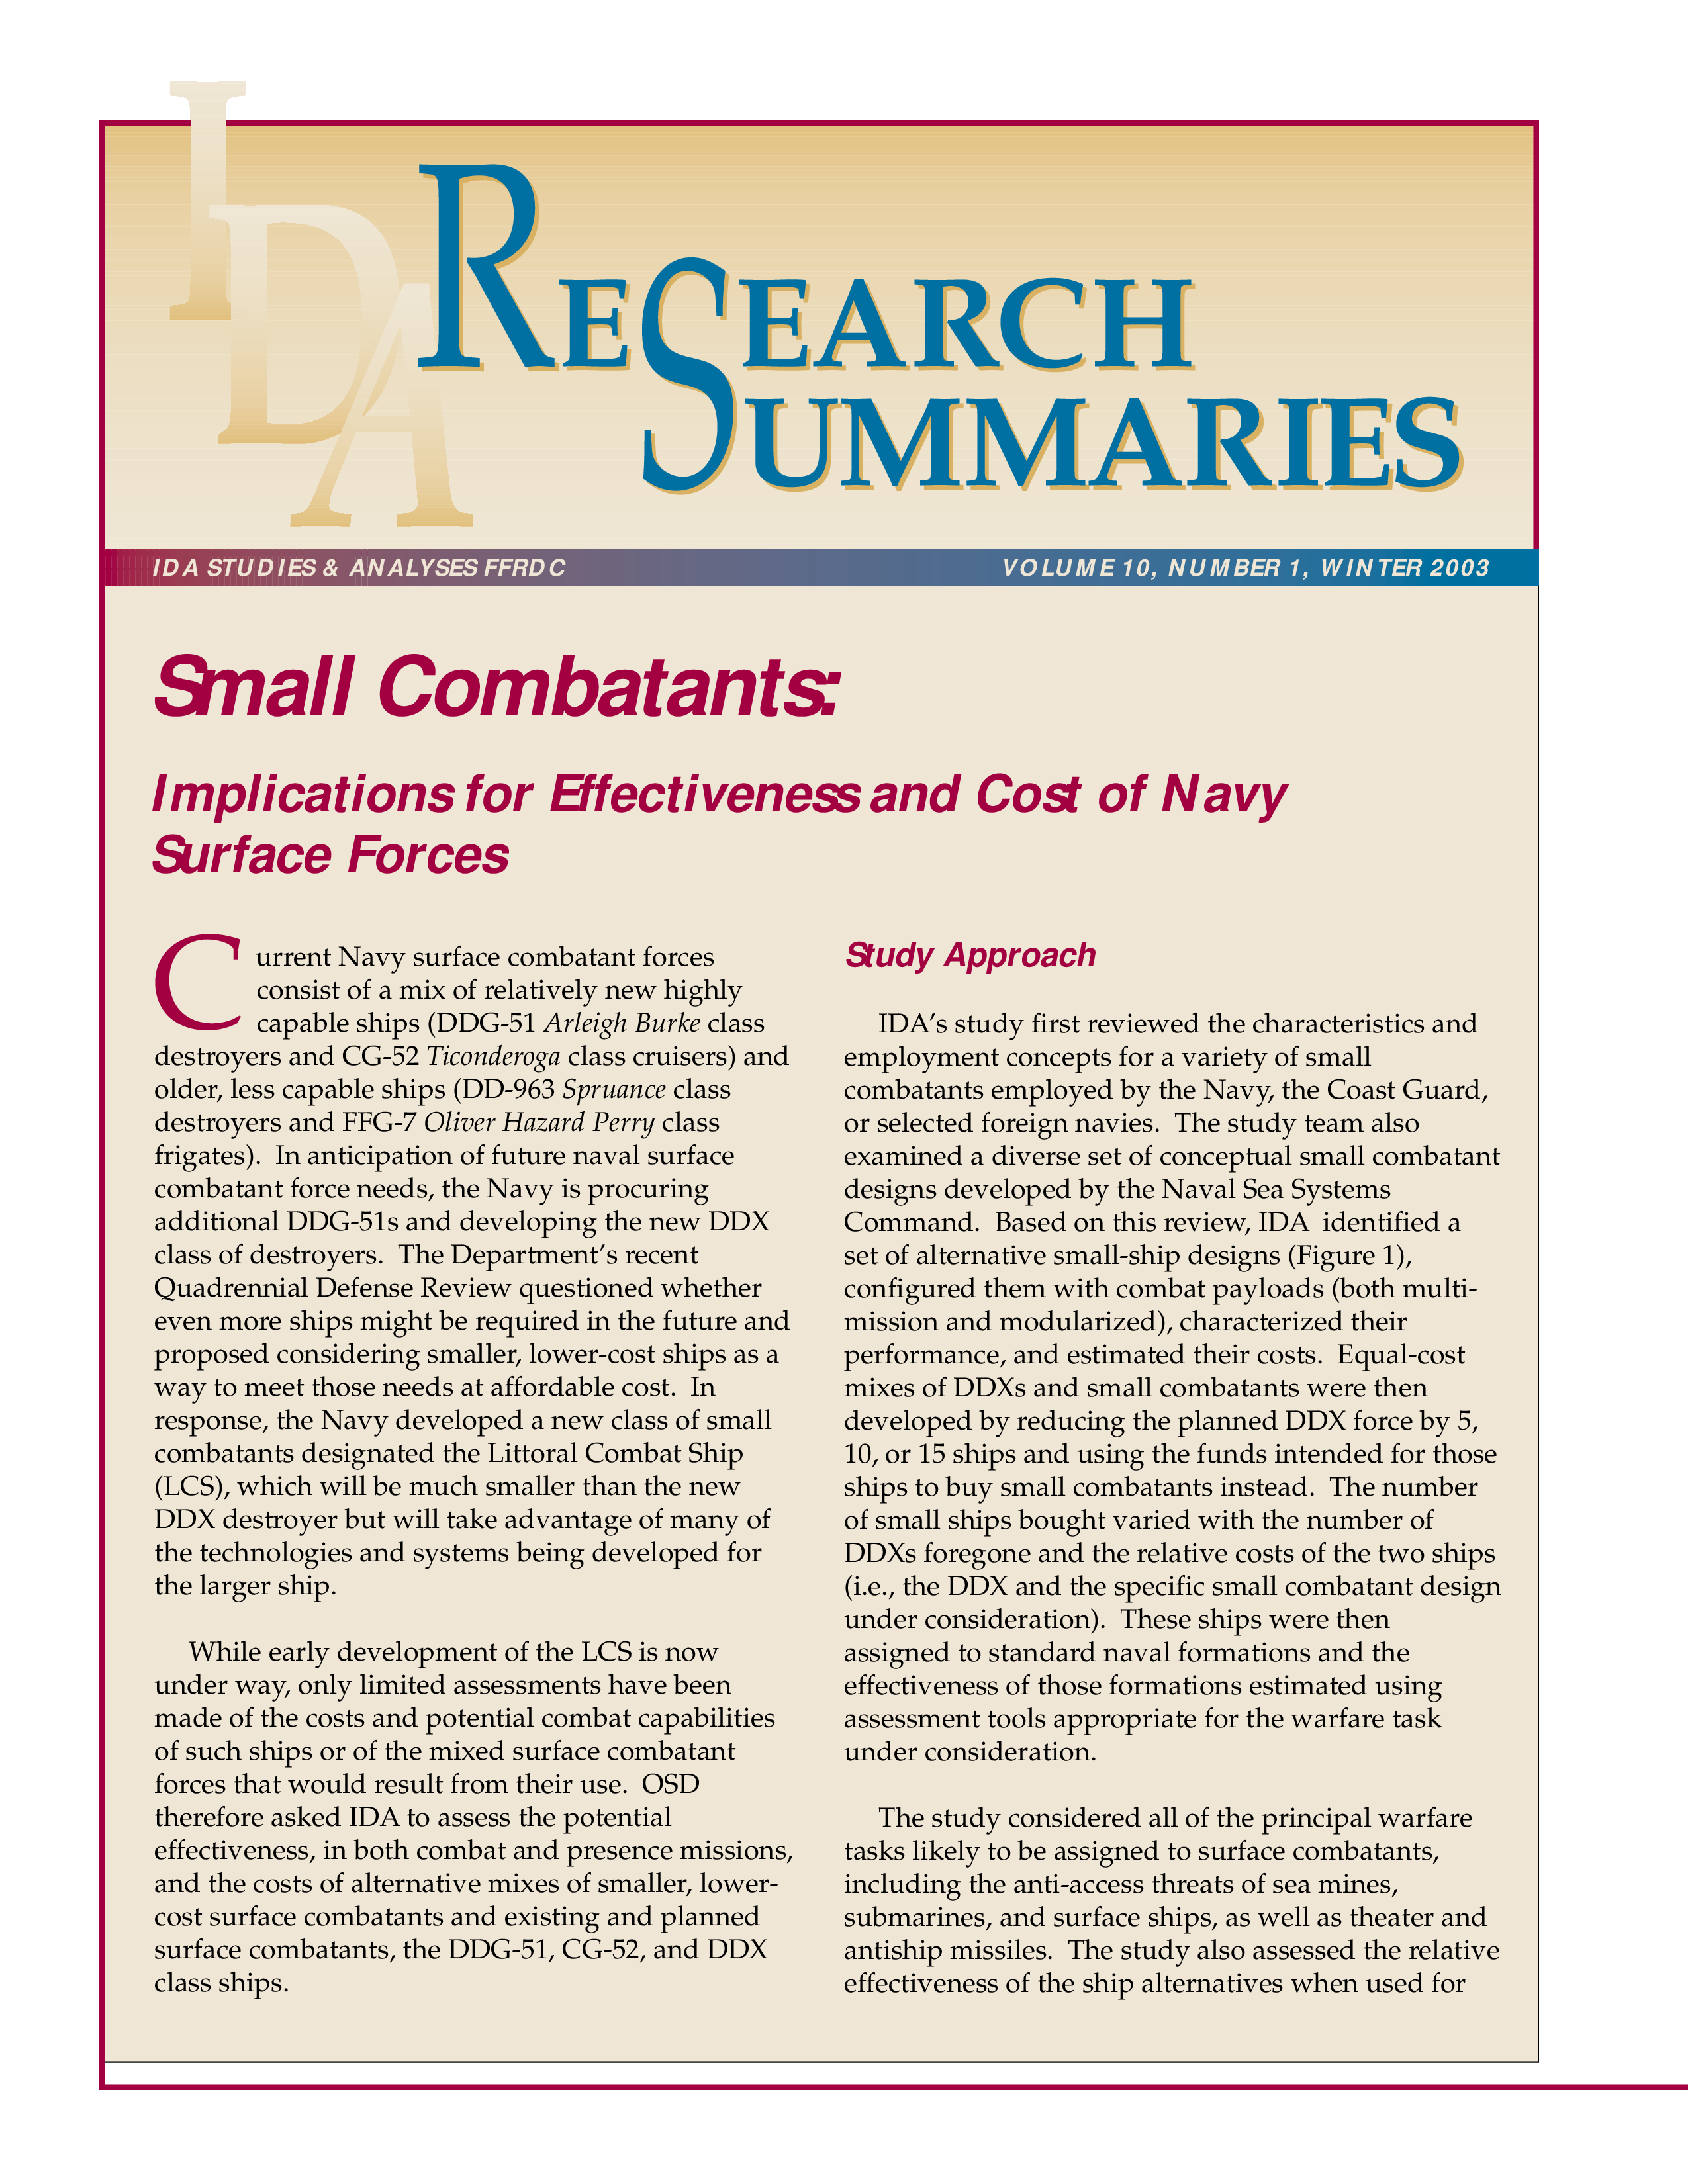 Research Summaries Small Combantants: Implications for Effectiveness and Cost of Navy Surface Forces